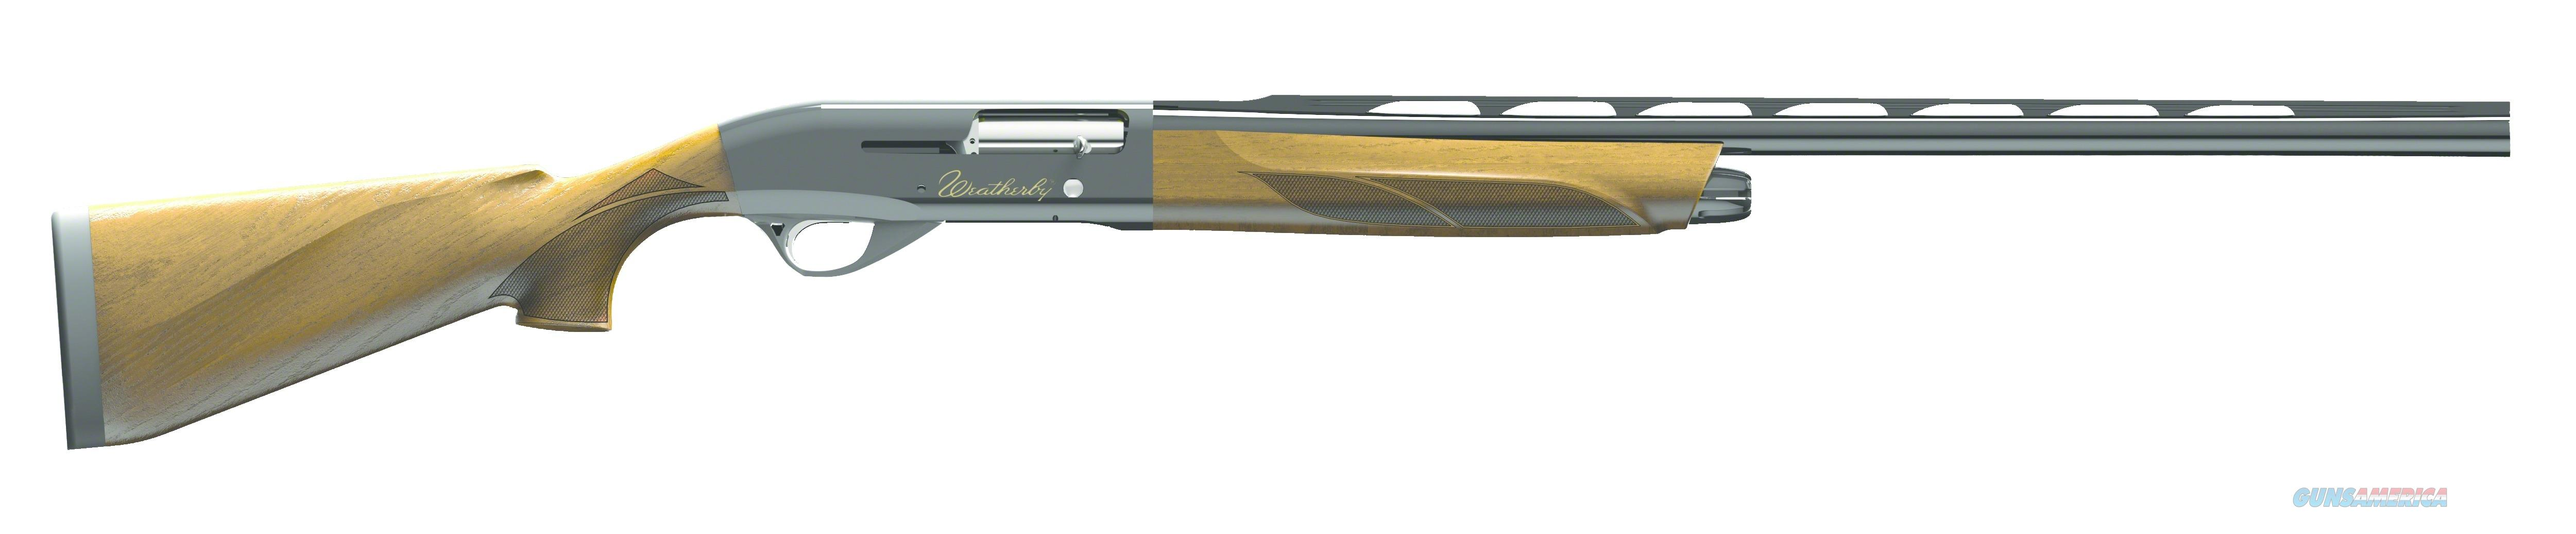 "WEATHERBY ELEMENT DELUXE 20G 26"" 3RD EDX2026PGG  Guns > Shotguns > Weatherby Shotguns > Hunting > Autoloader"